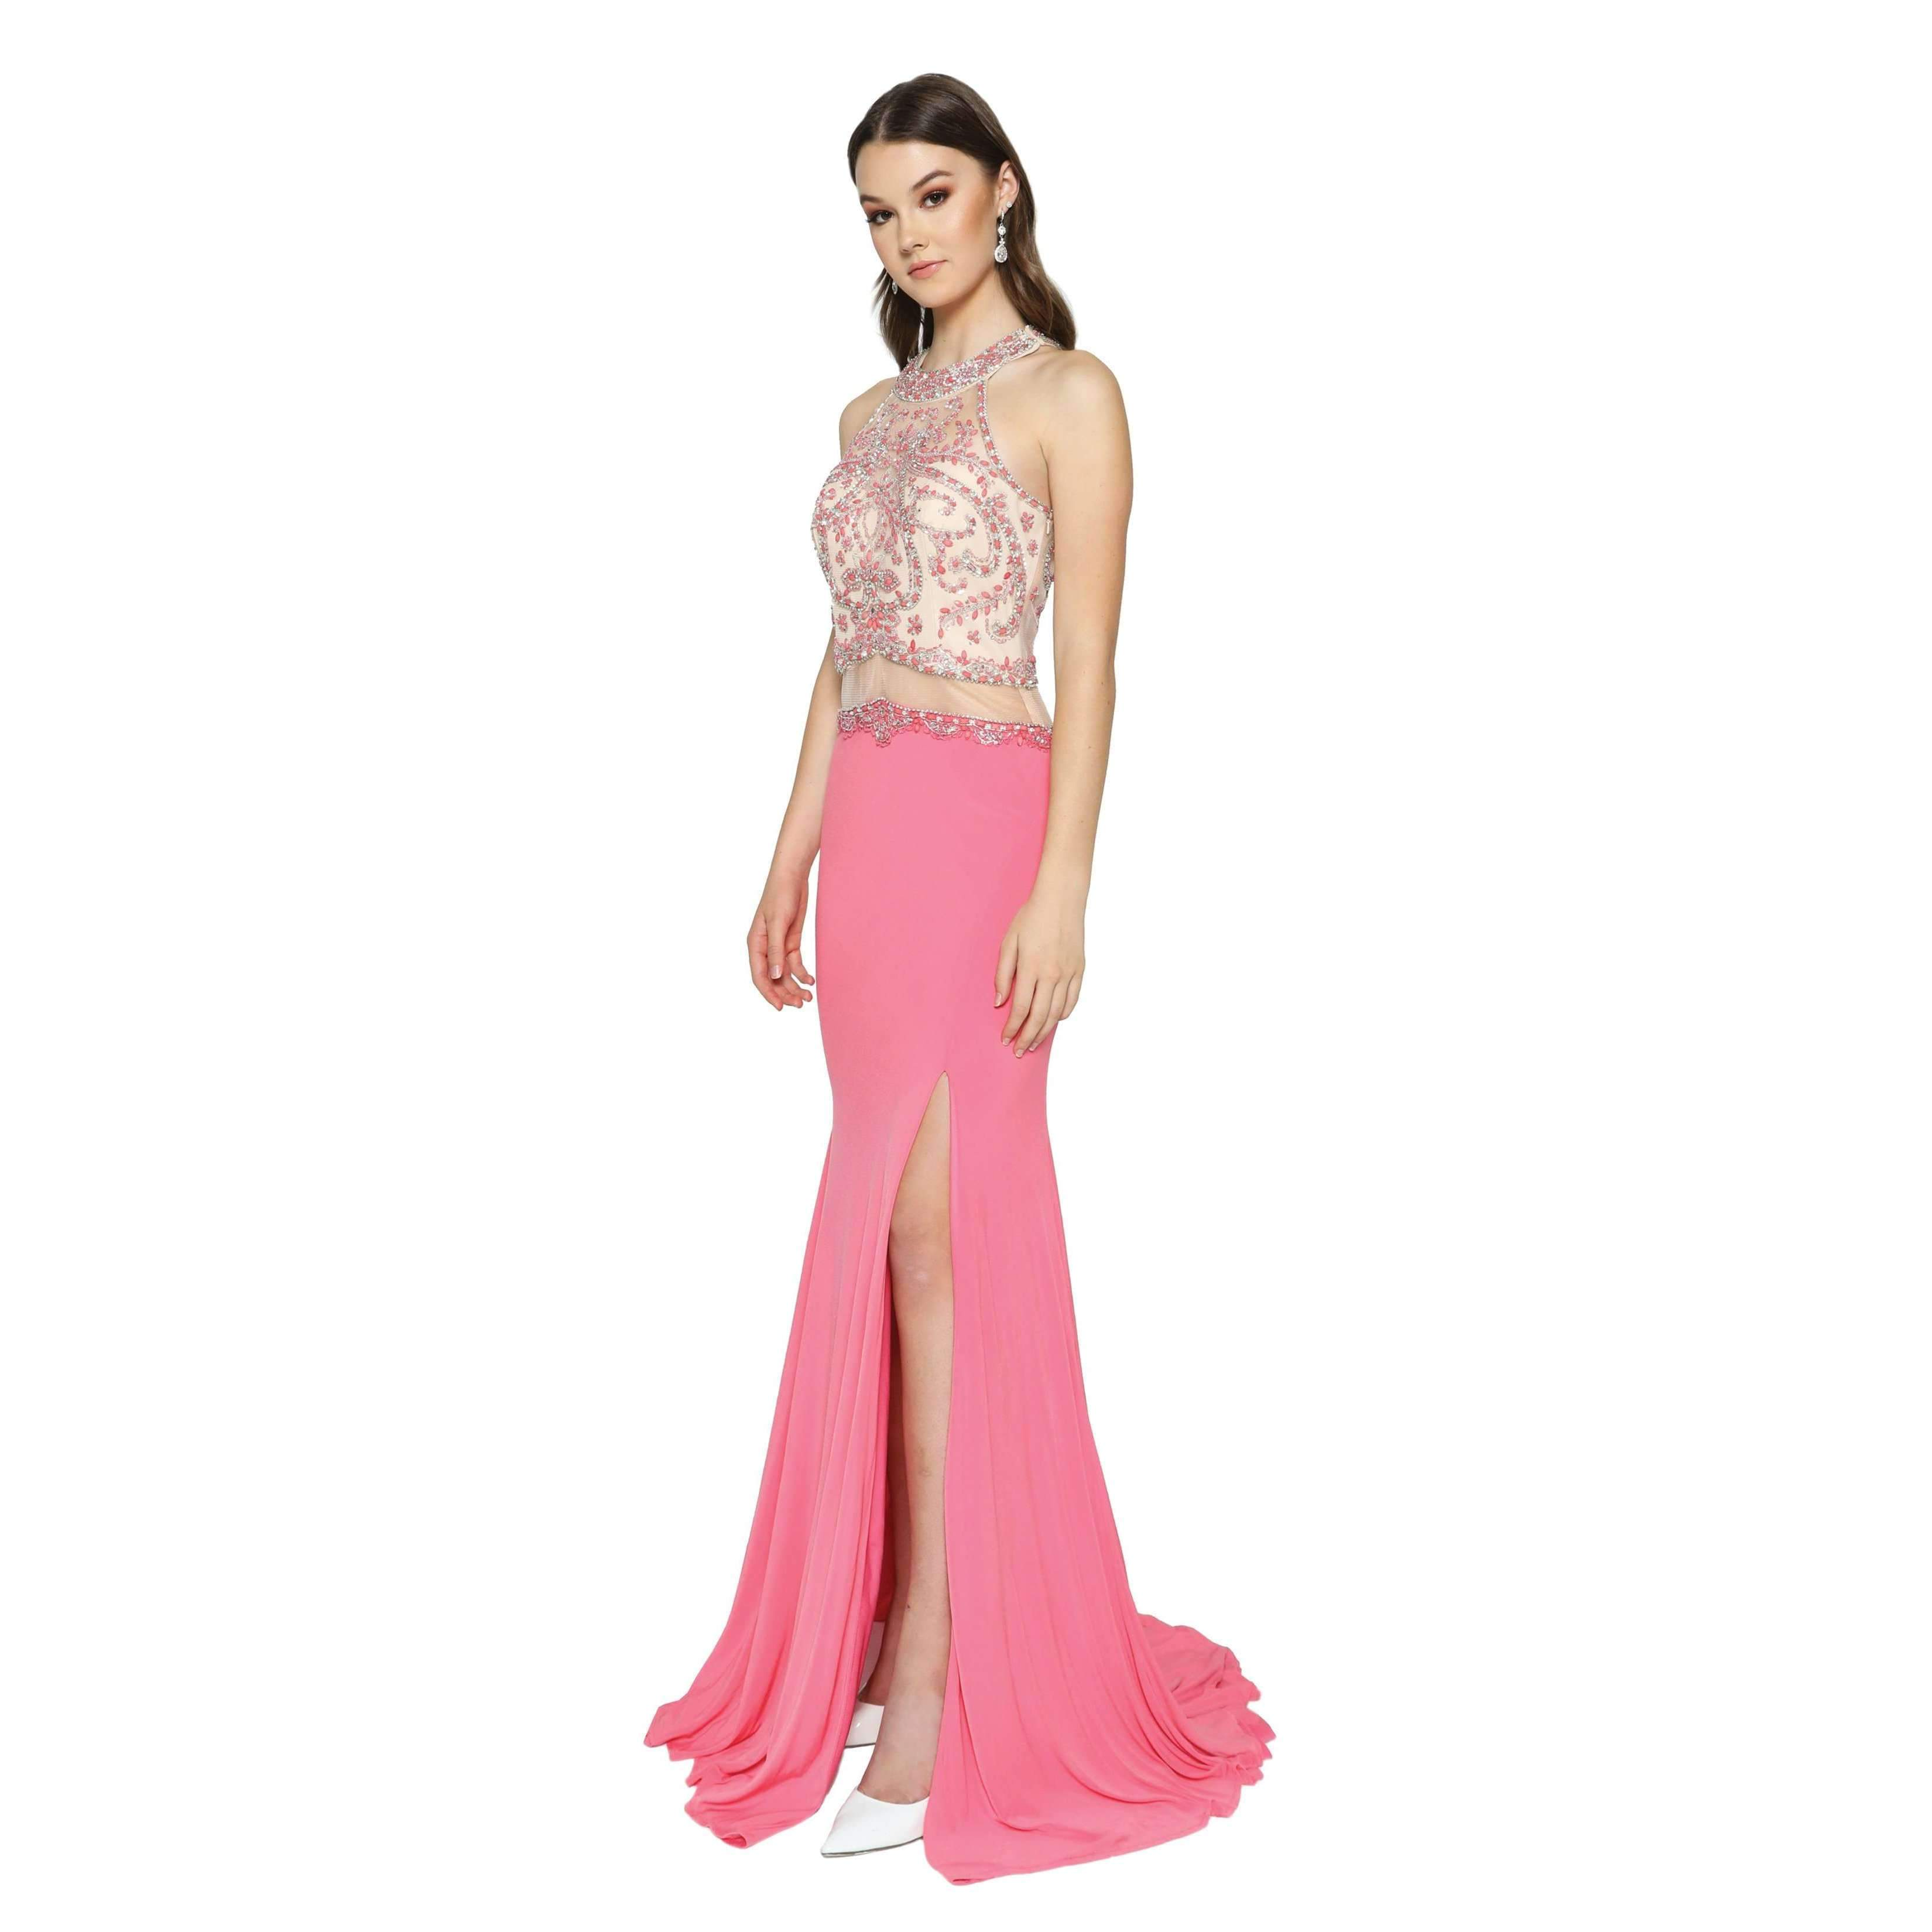 Tight fitted prom dress with high slit 105-620 – Simply Fab Dress